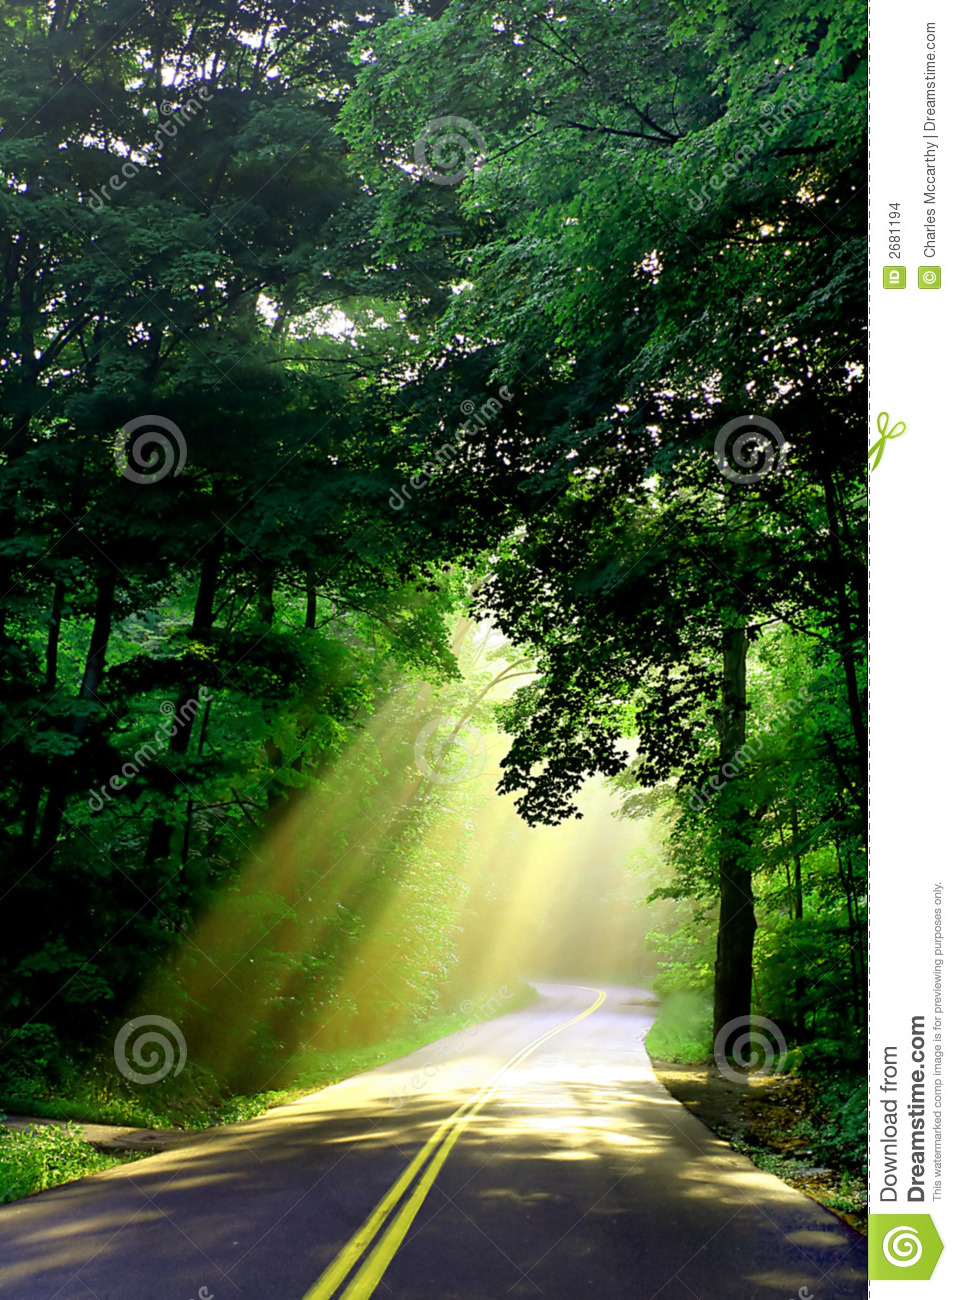 Sunlight on country road